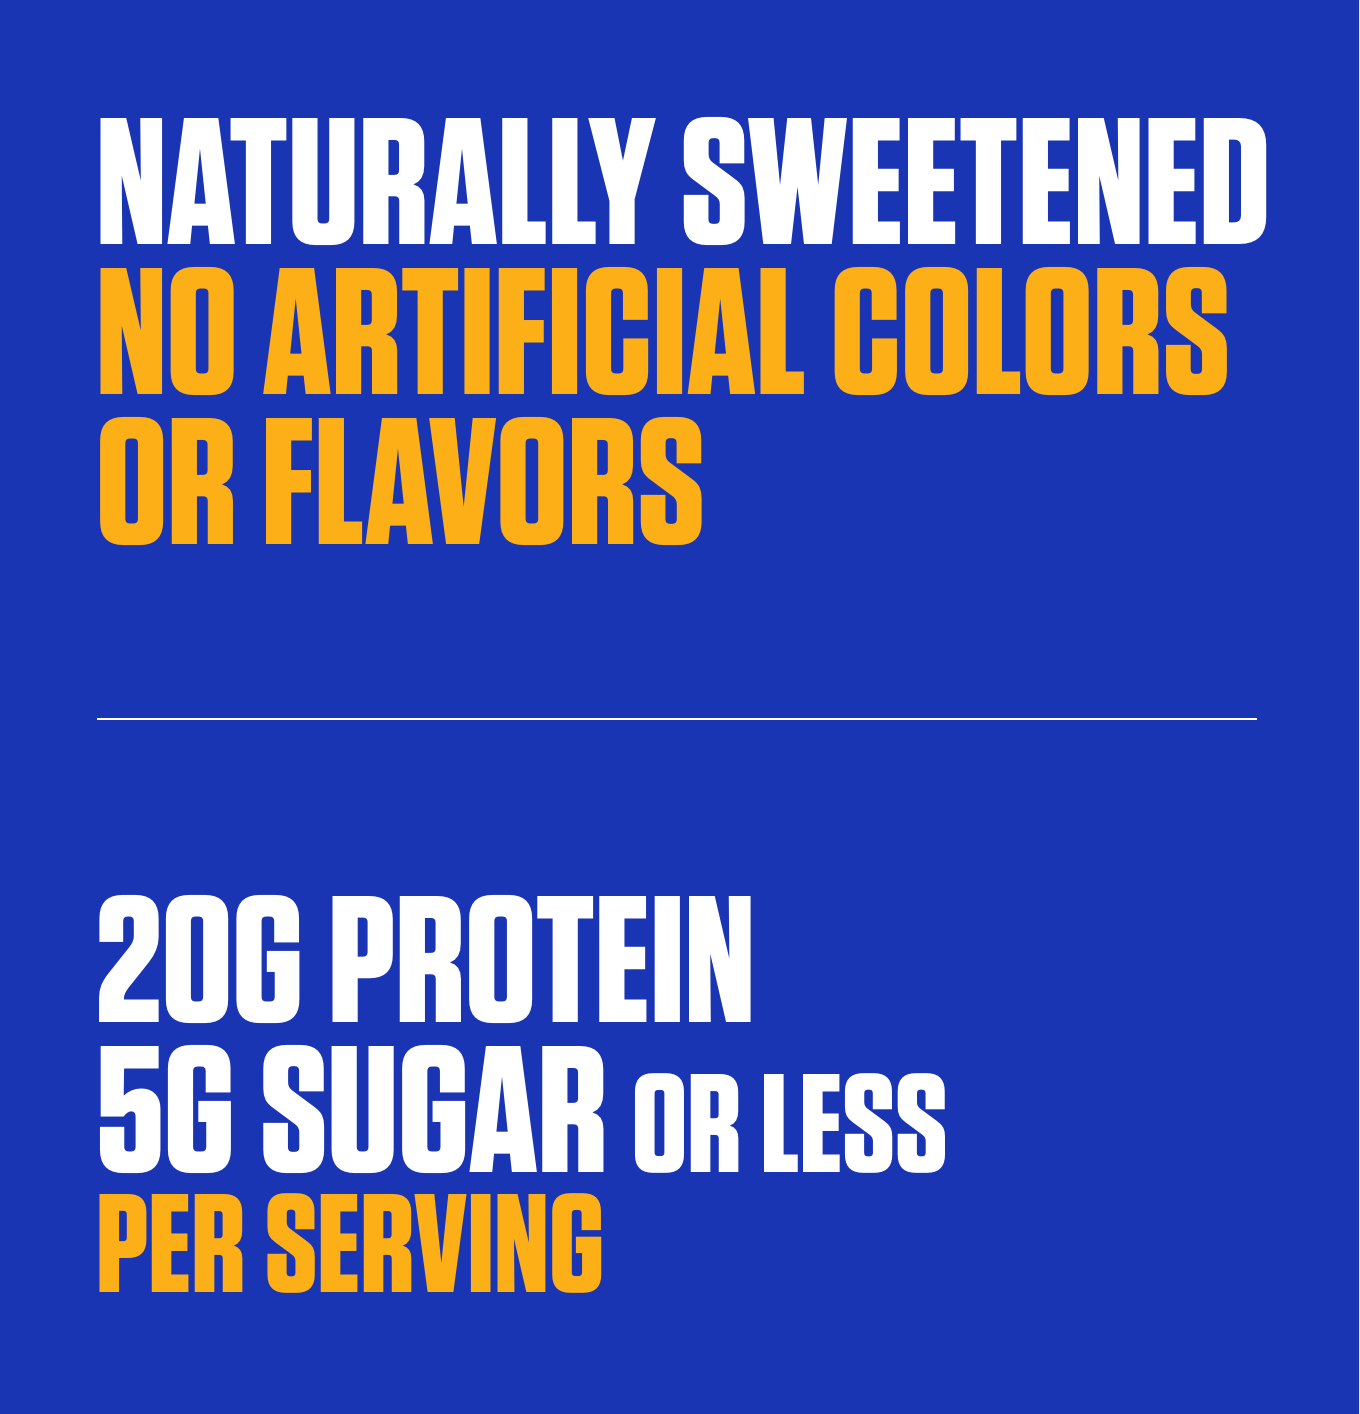 Naturally Sweetened No Artificial Colors or Flavors